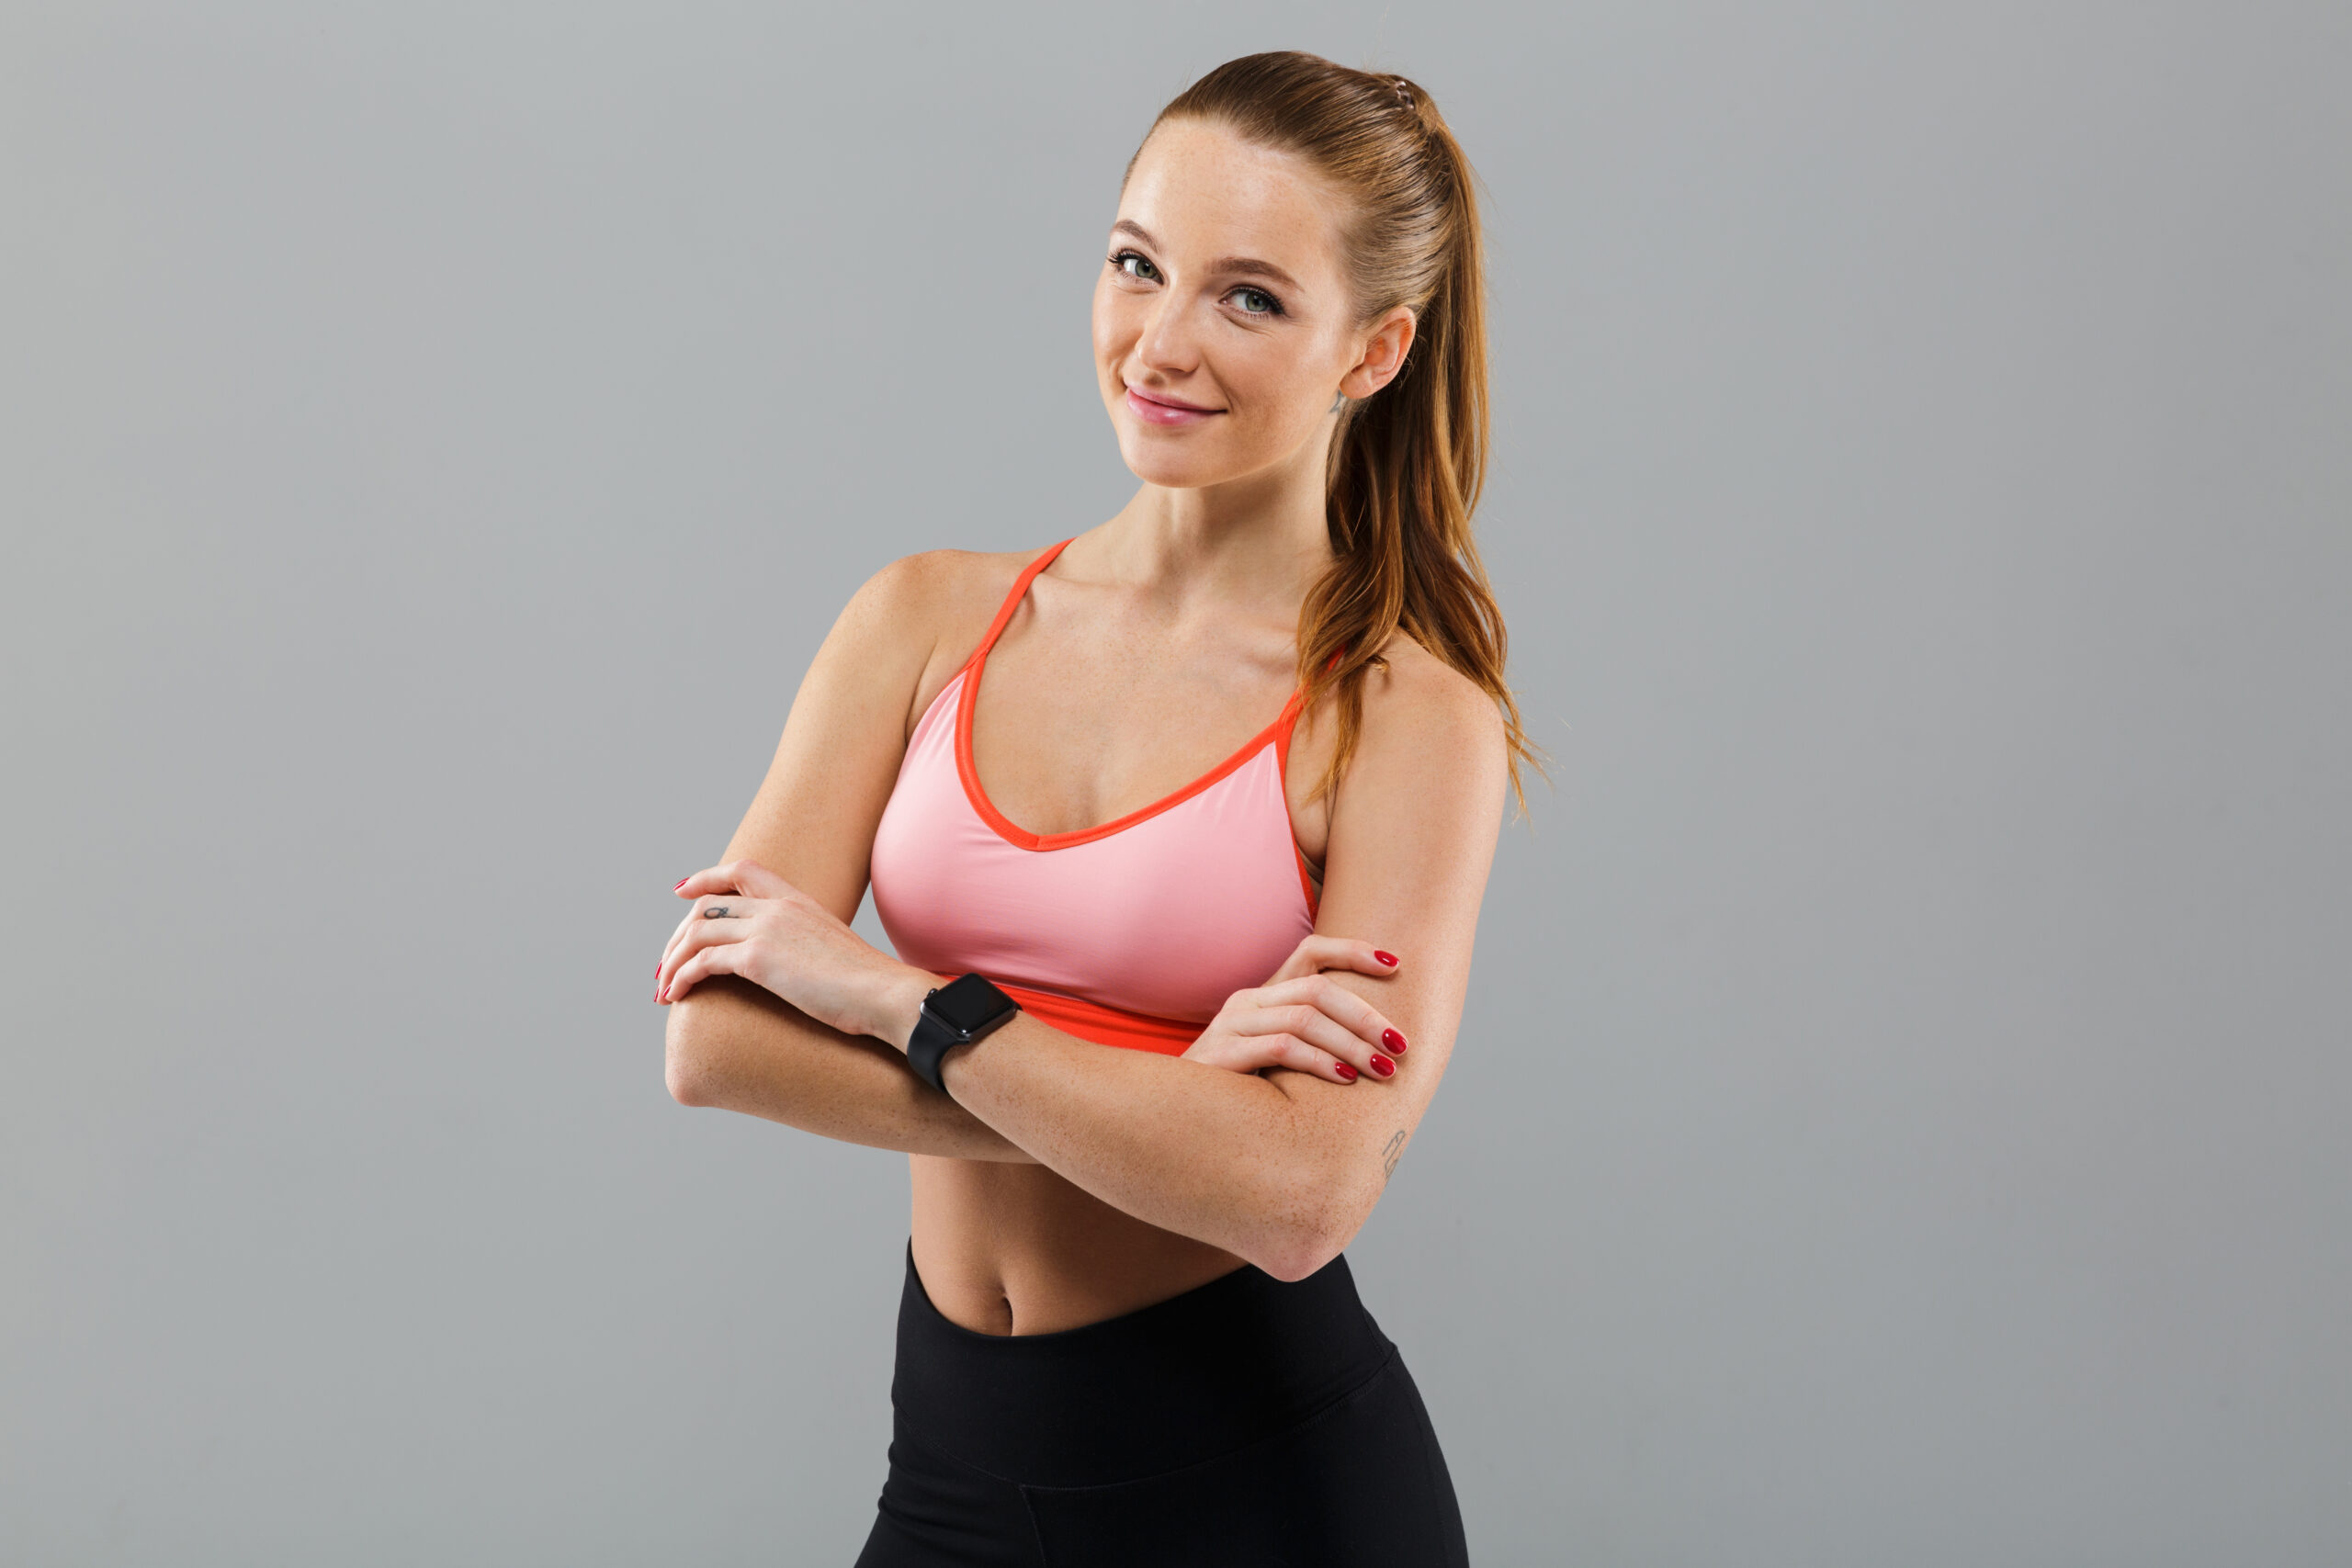 Photo of cheerful young sports woman standing isolated over grey background. Looking camera with arms crossed.